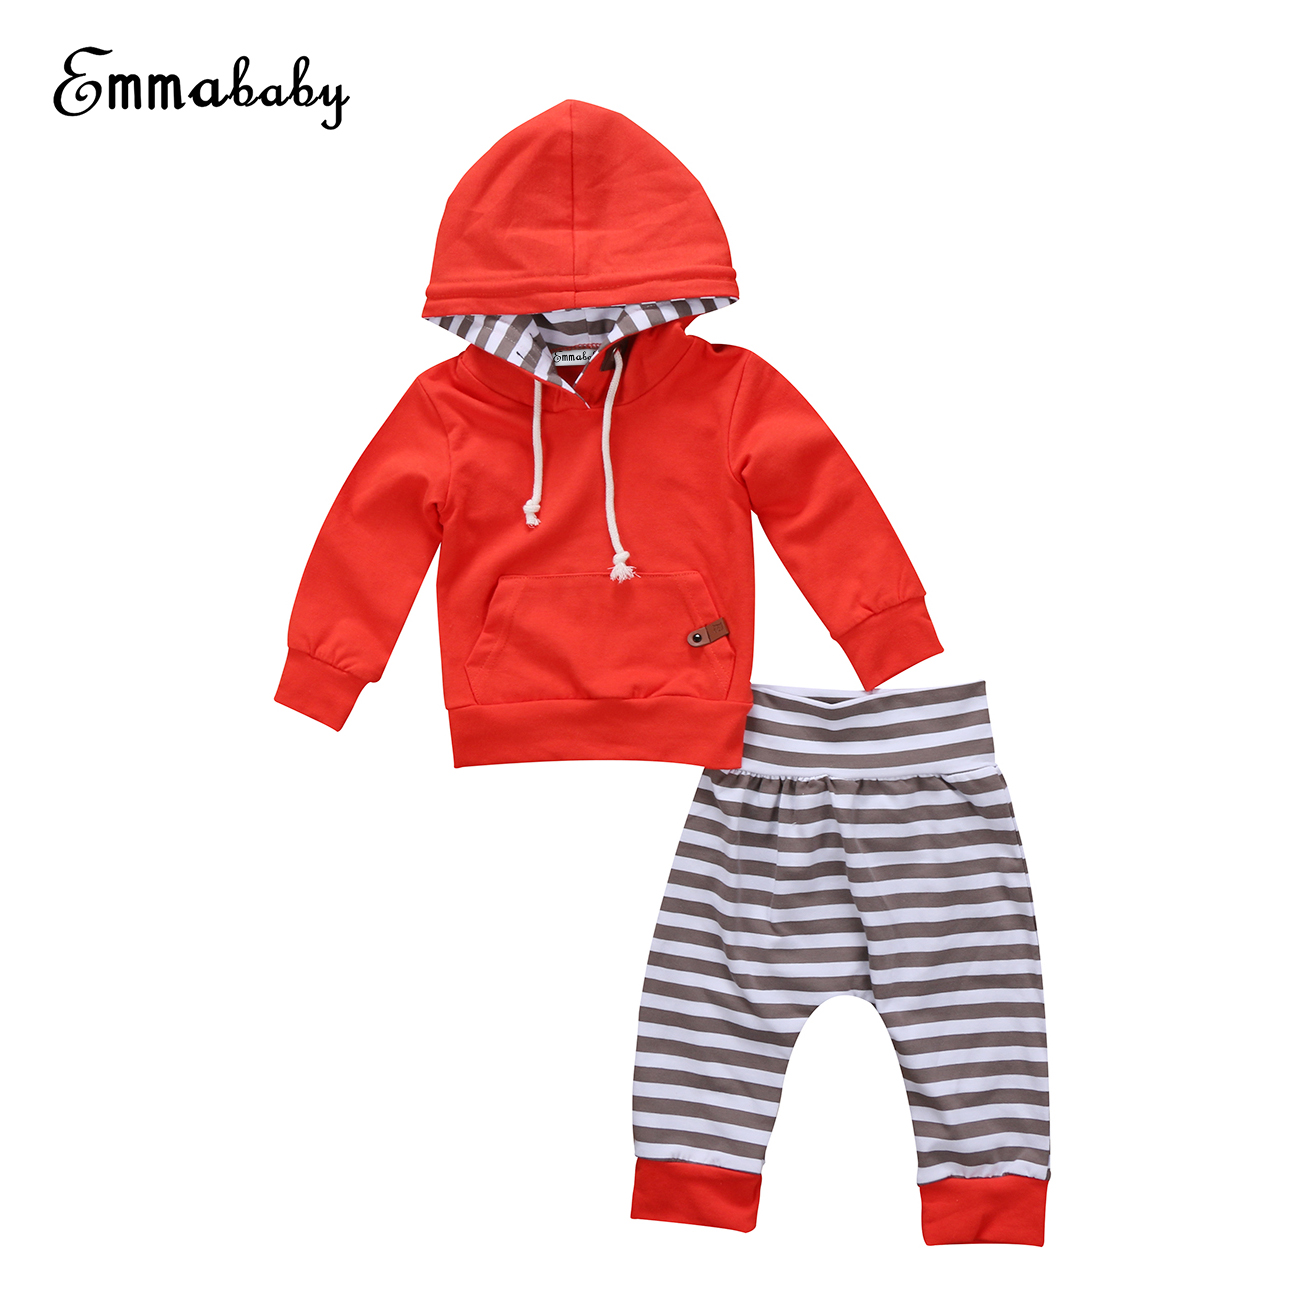 Tracksuit Sweater 2PCS Boys Clothing Outfits Hat Set Shirt Pant long sleeves